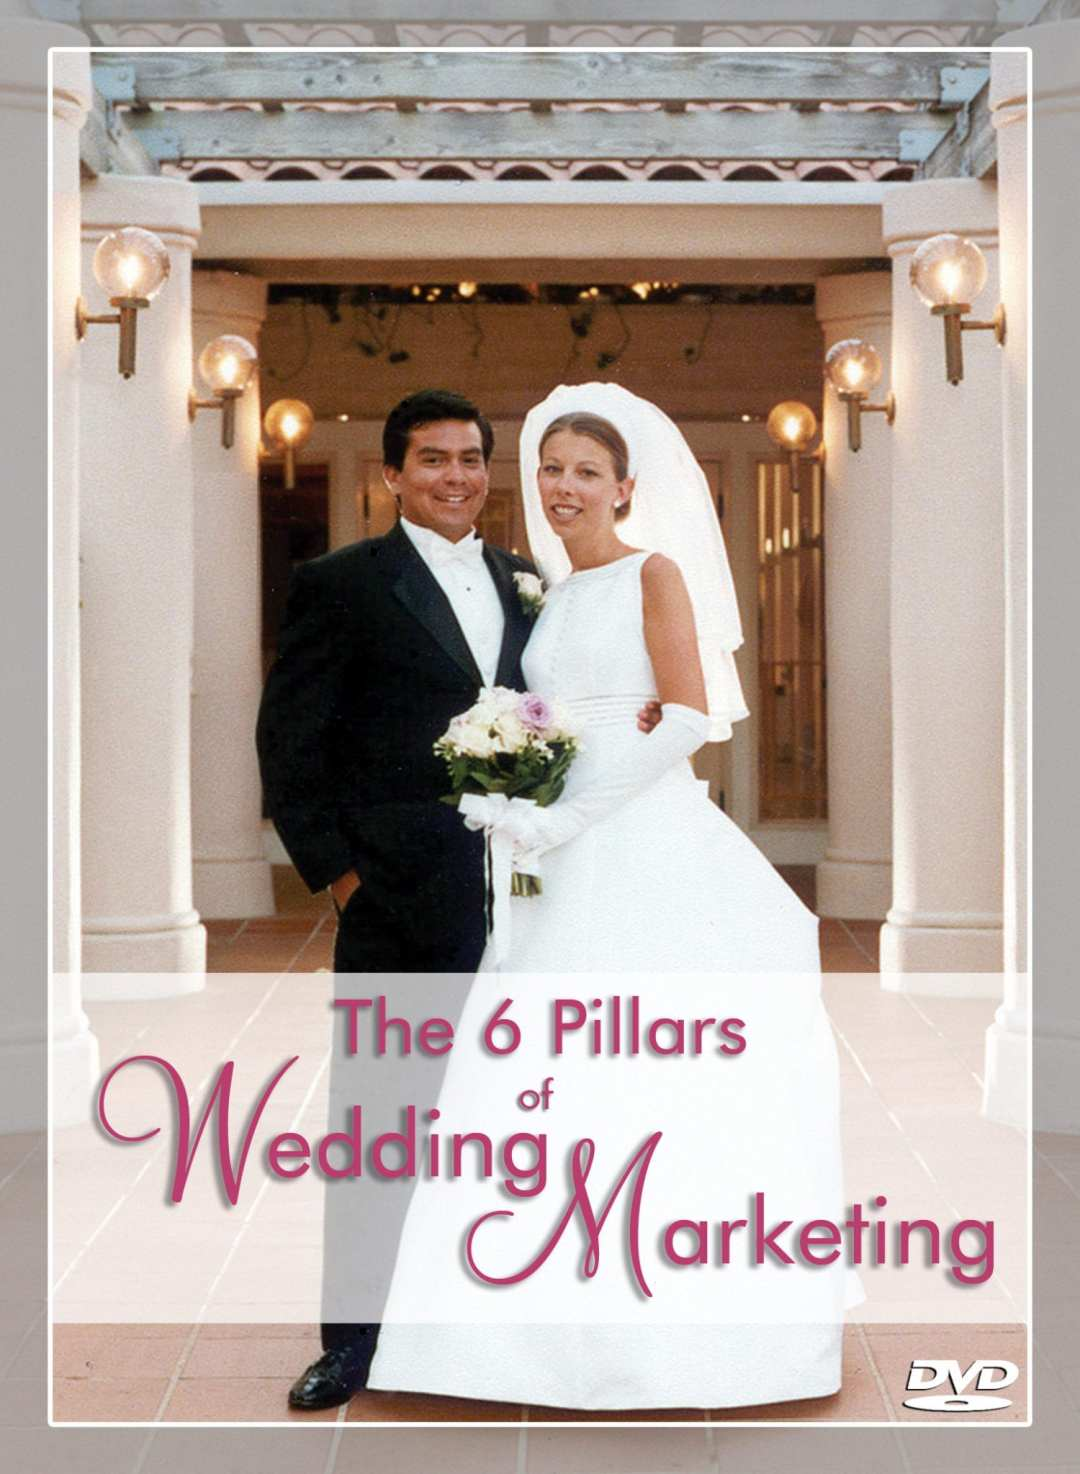 Peter Merry's DVD, The 6 Pillars of Wedding Marketing